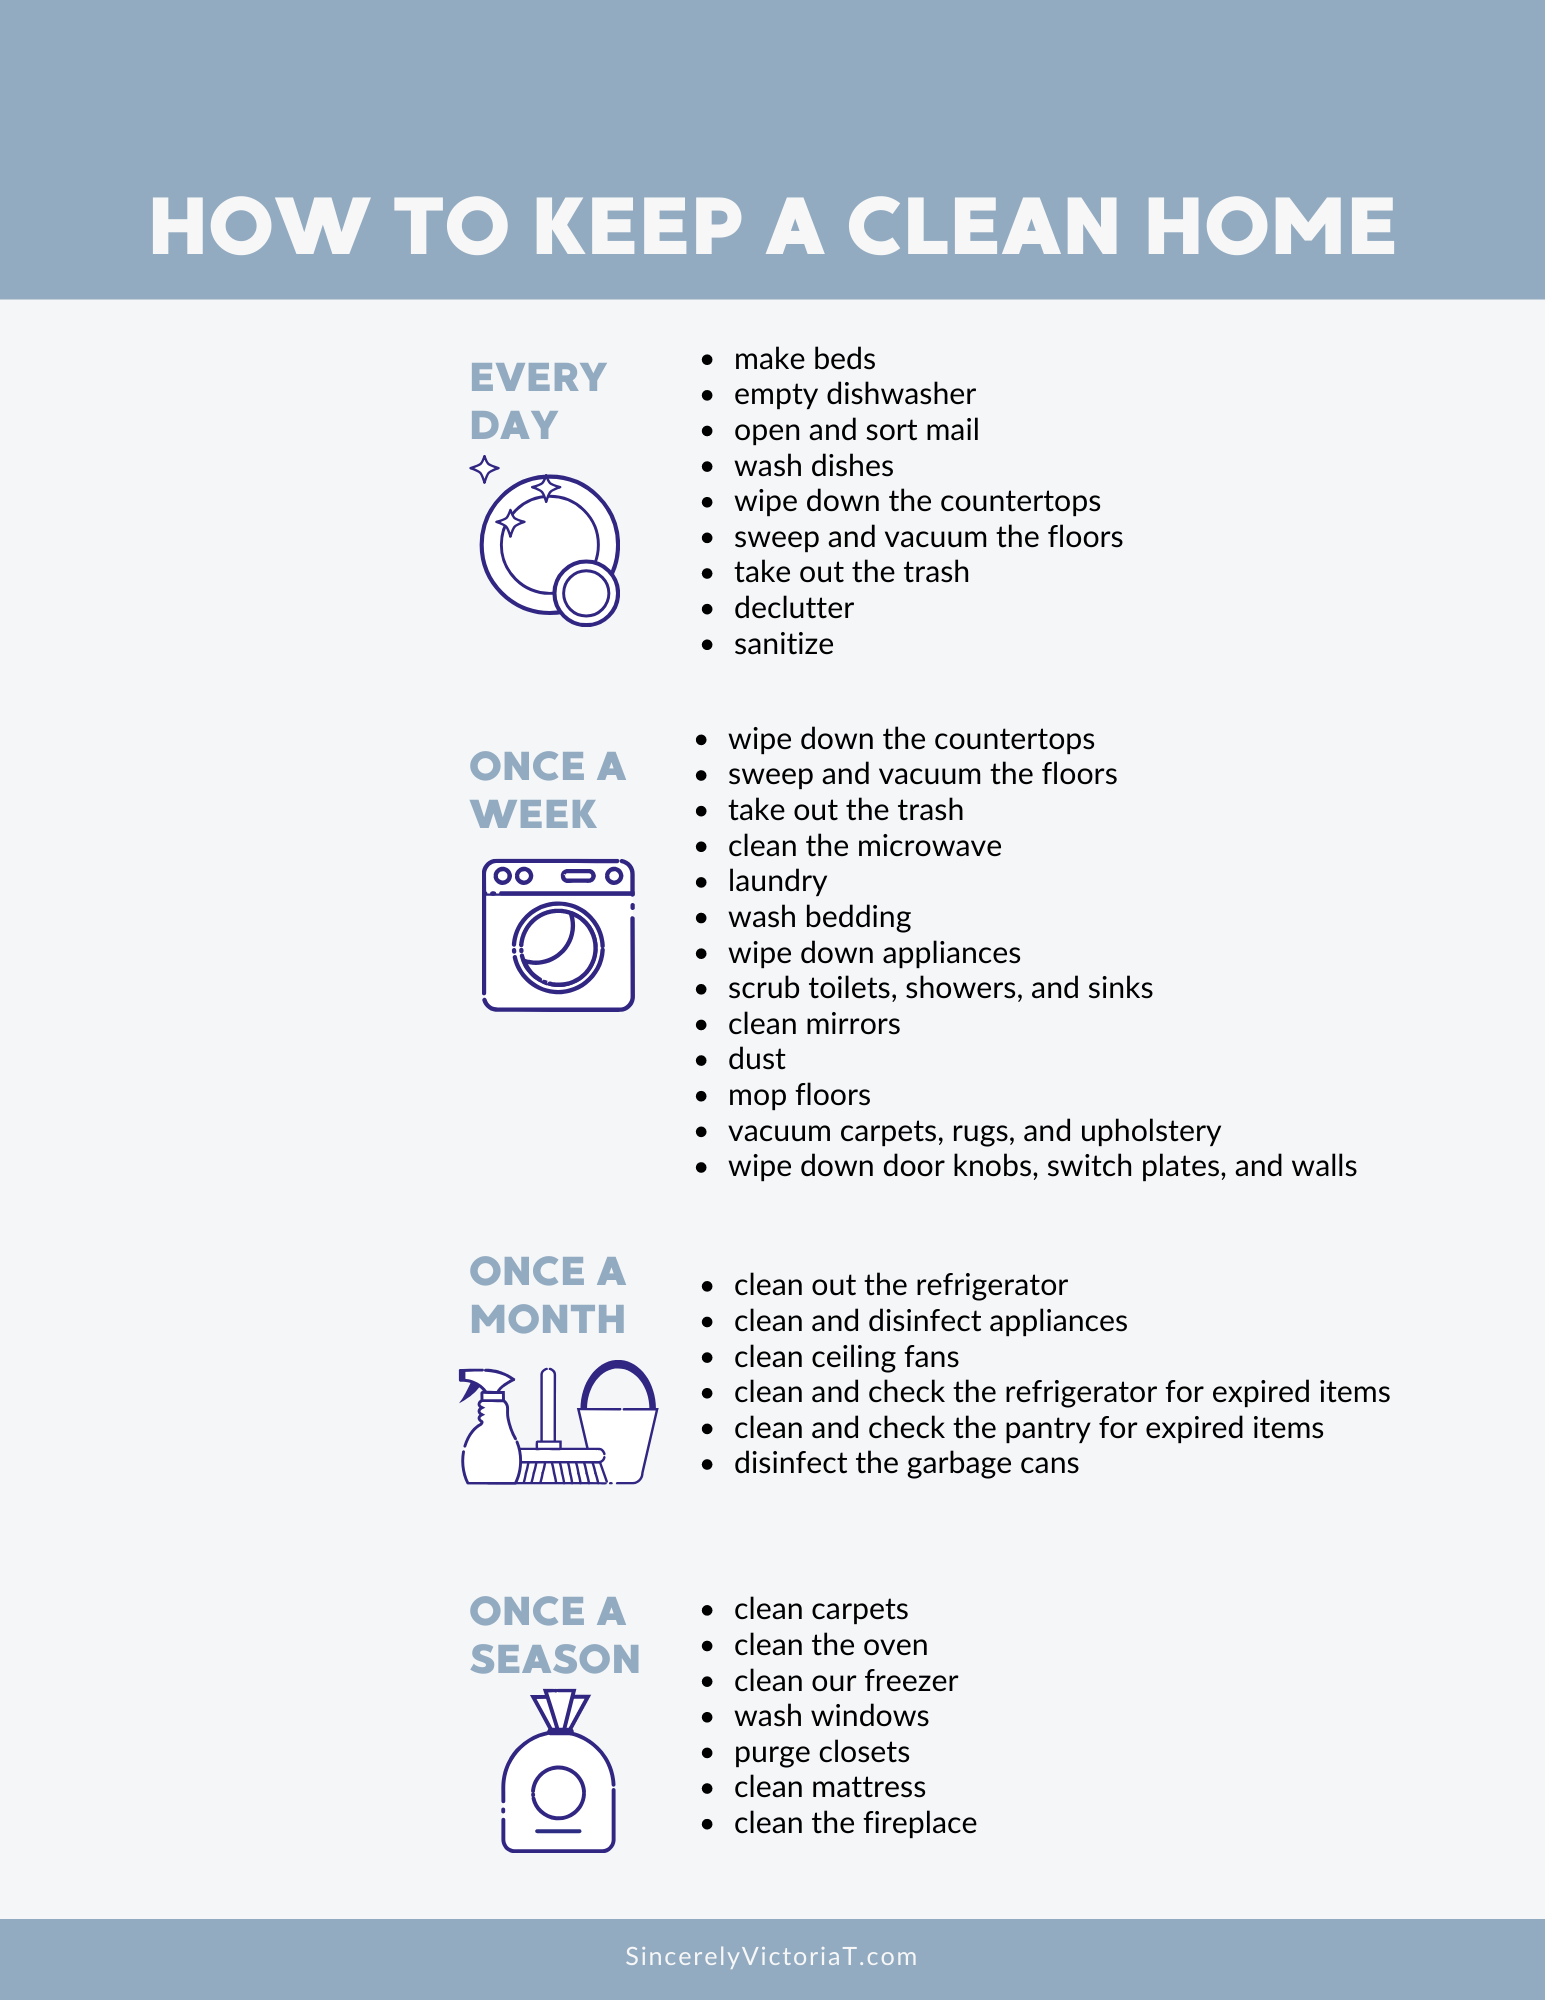 As a mom, I have learned easy ways to minimize the mess and reduce my stress. To keep a tidy home, practice these daily habits to keep your house clean.